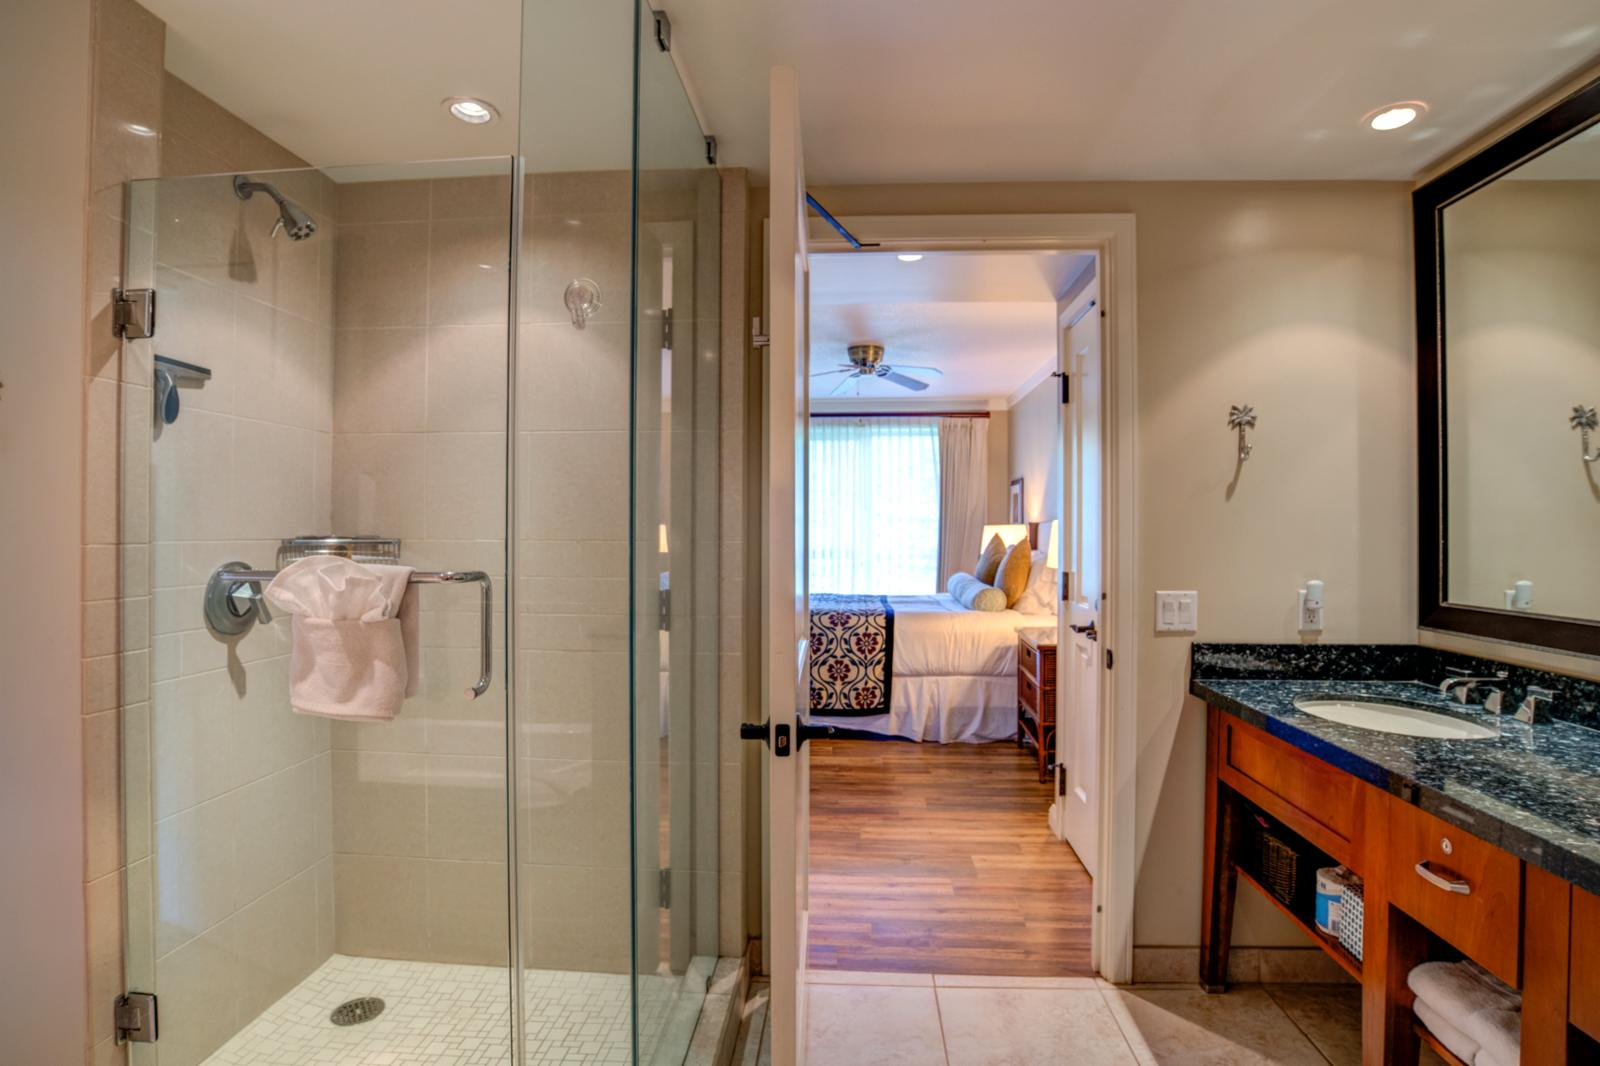 Floor to ceiling enclosed glass shower